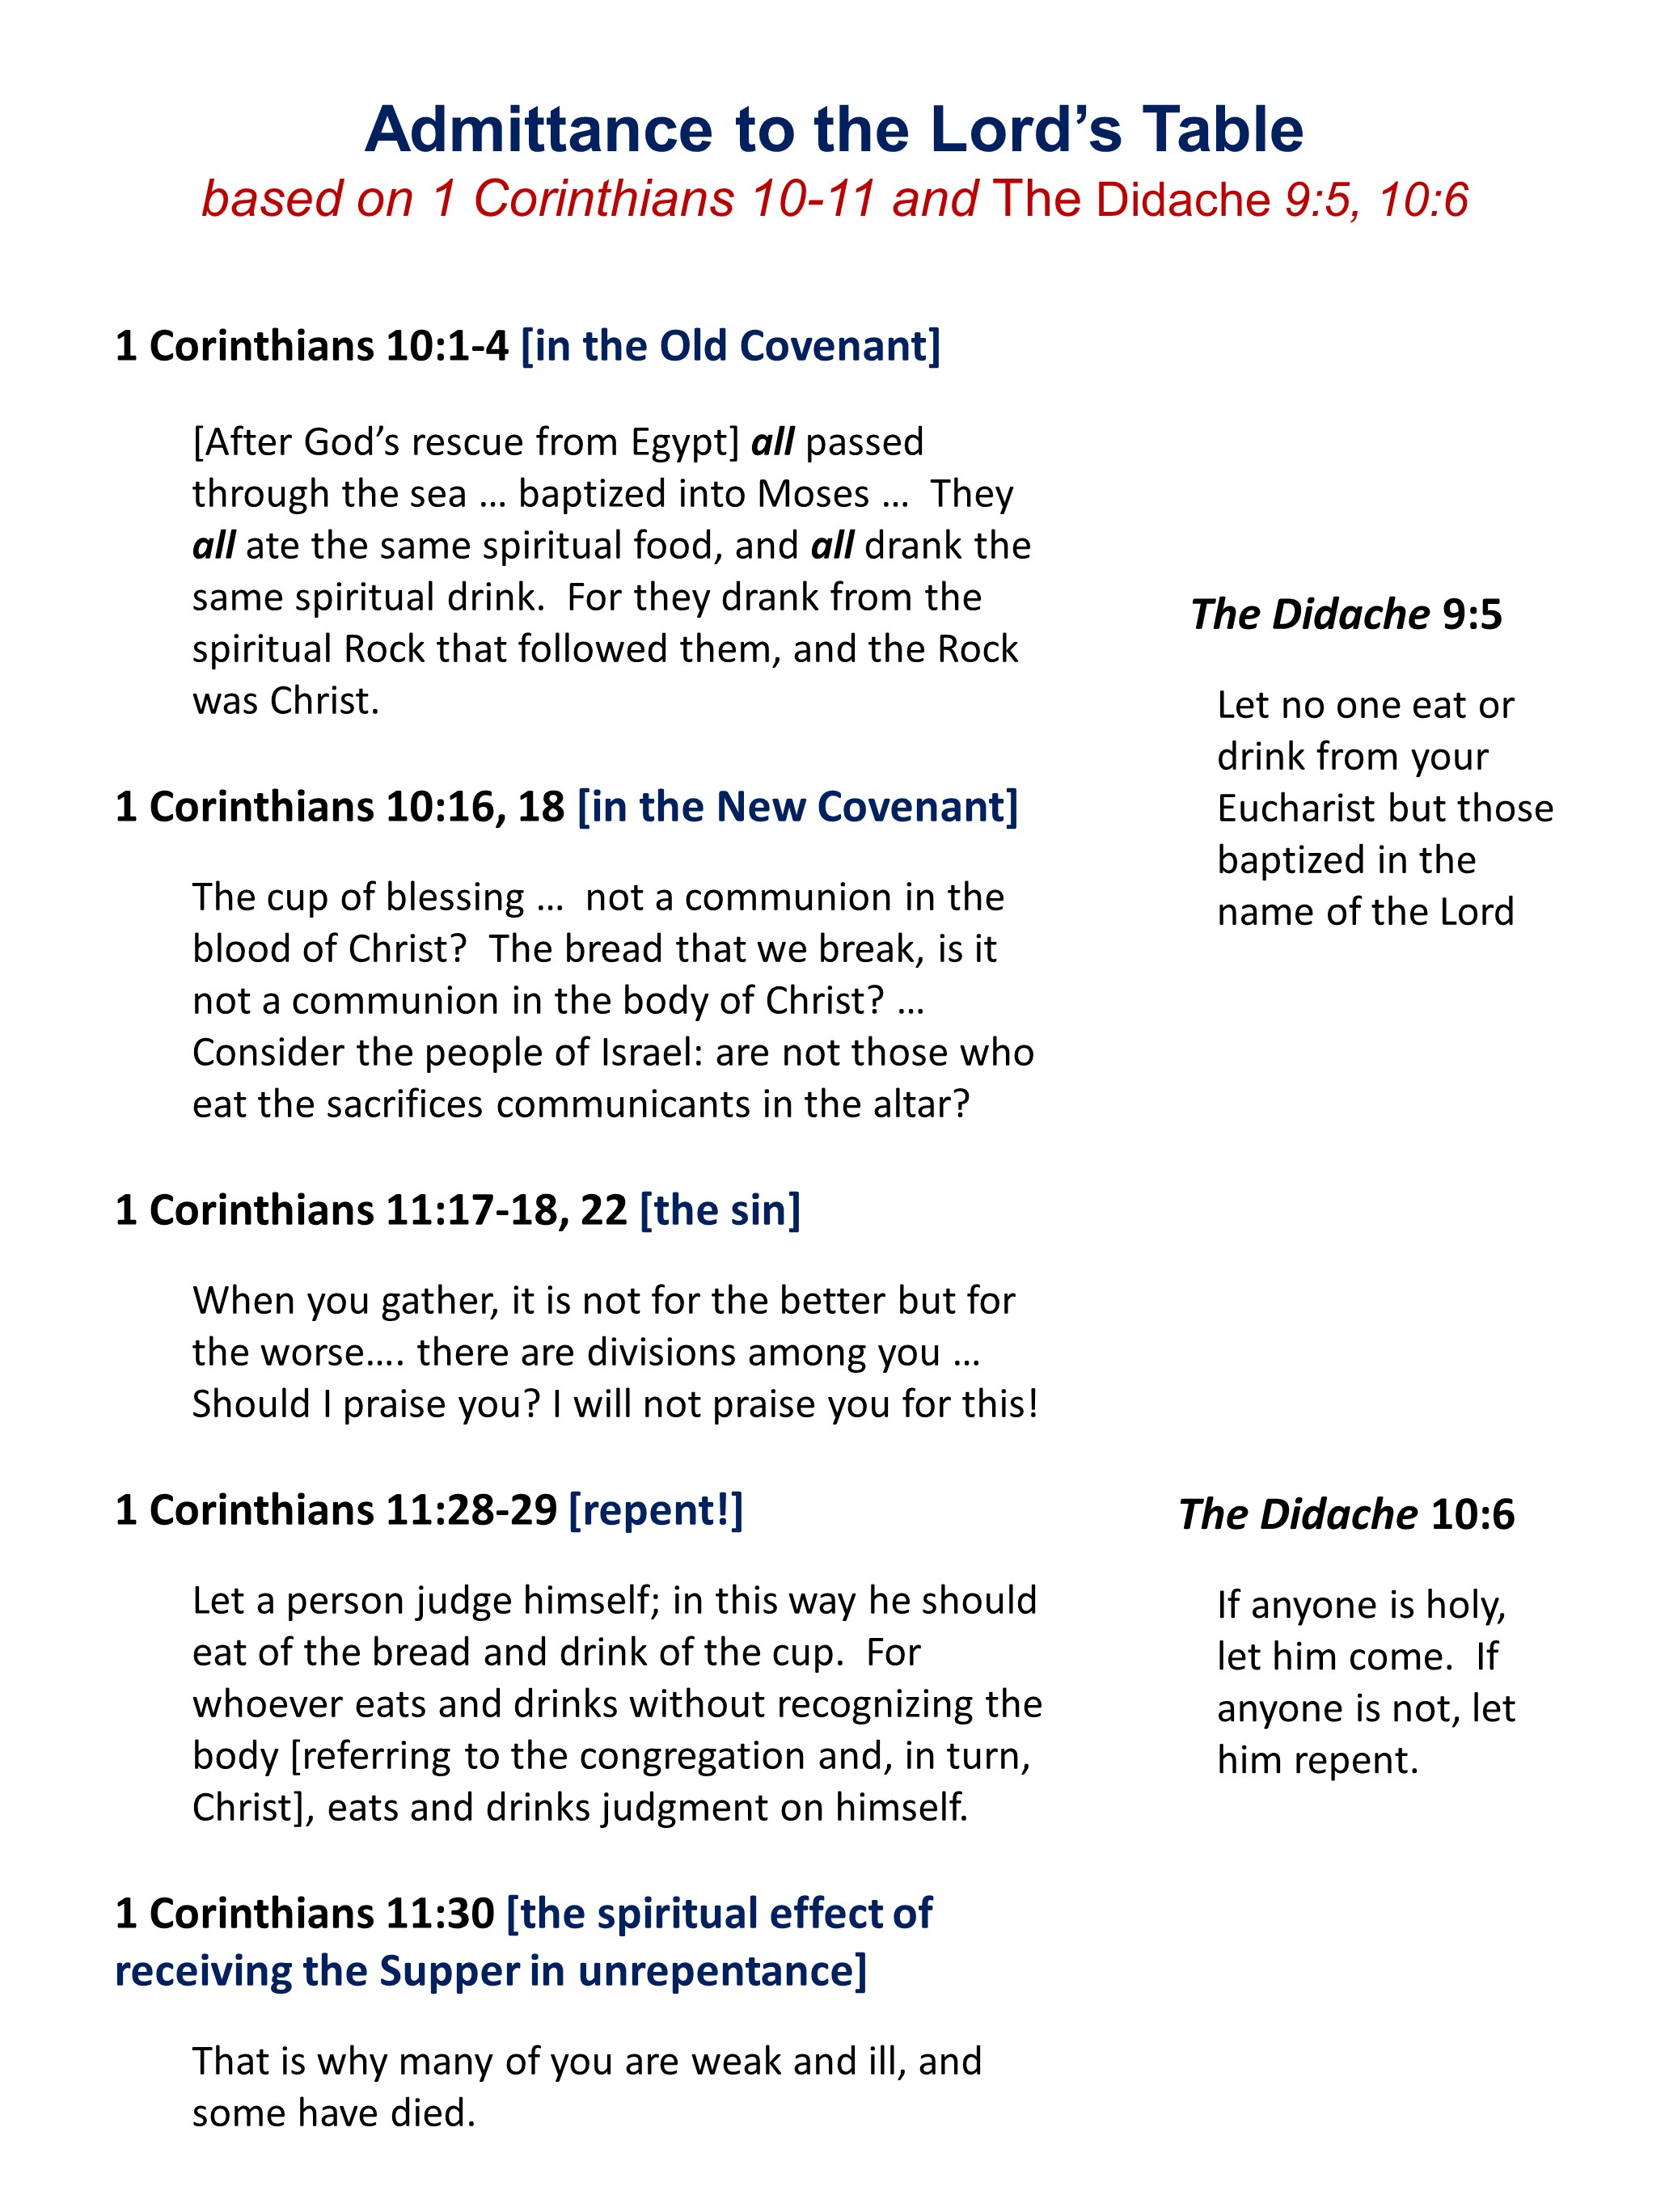 Church History, Lesson 5: The Didache, Pt  2 — Shepherd of